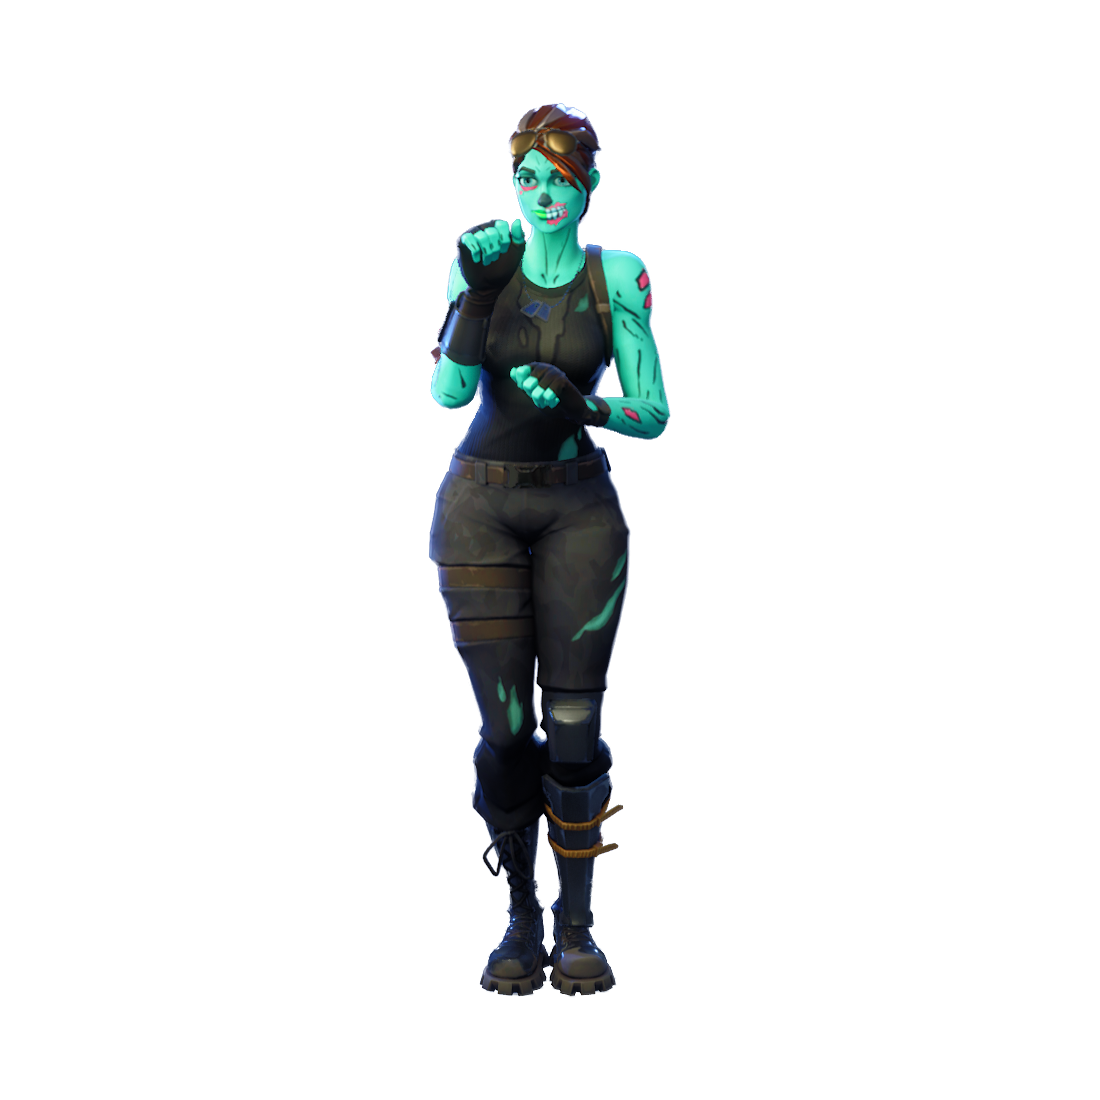 Games High-Resolution Tidy Fortnite Pic image #47404